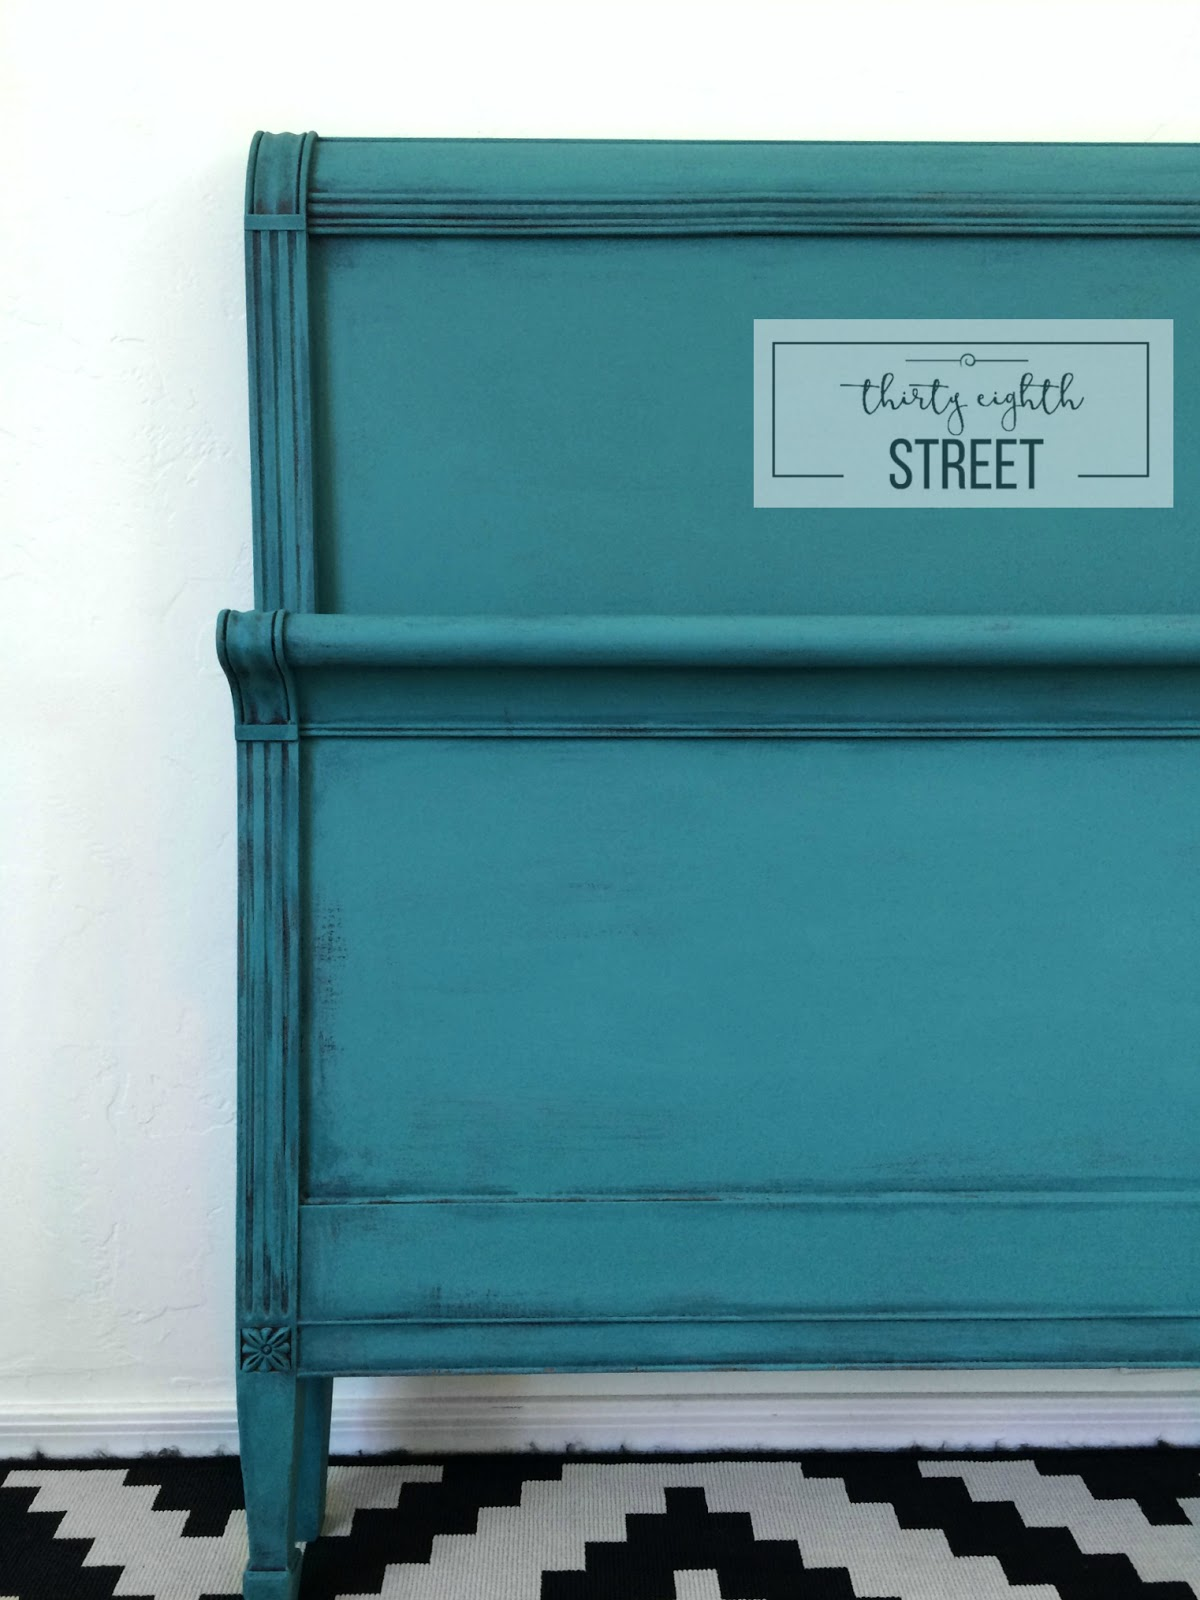 Layering Chalk Paint® On Furniture - Thirty Eighth Street for rustic painted furniture techniques  111ane